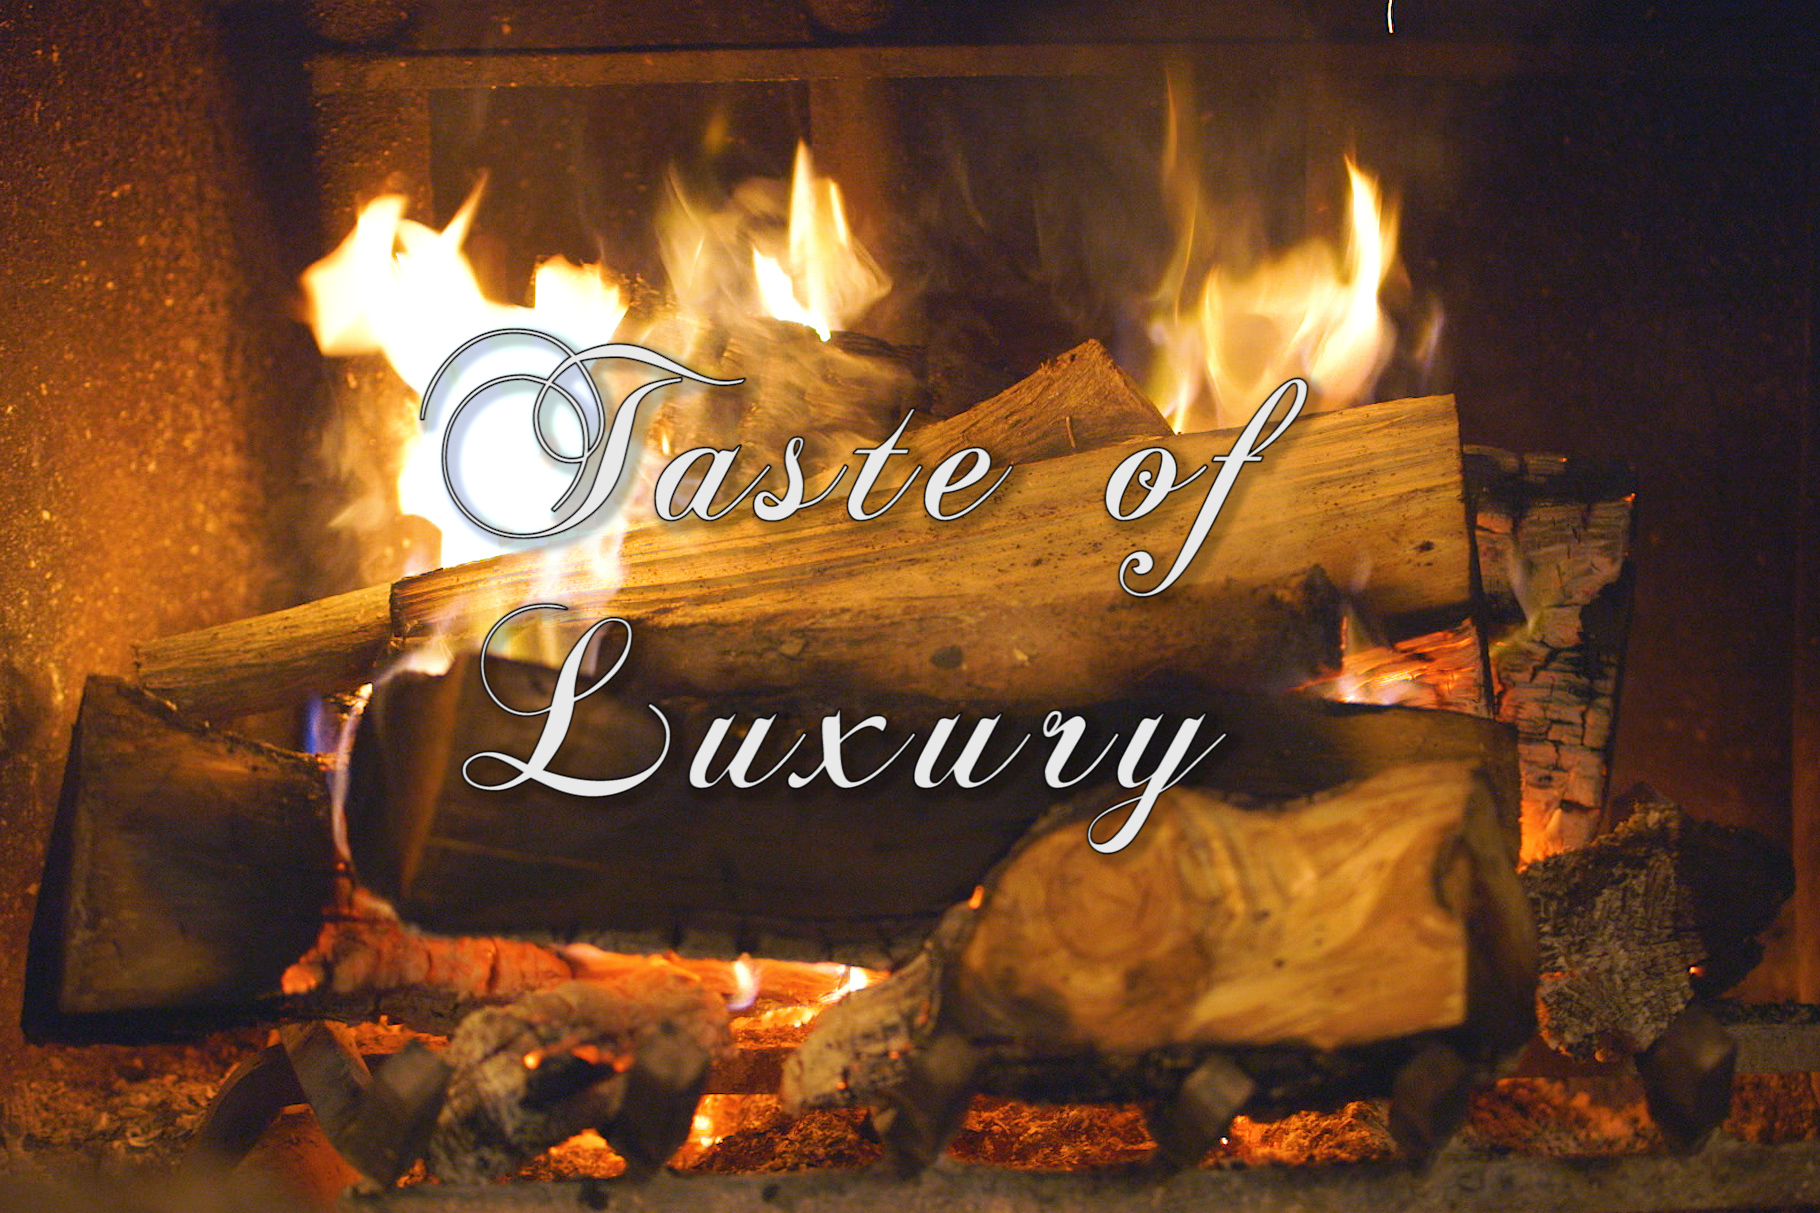 """The words """"Taste of Luxury"""" in white script front superimposed over a close-up photo of a wood fire burning in a fireplace."""